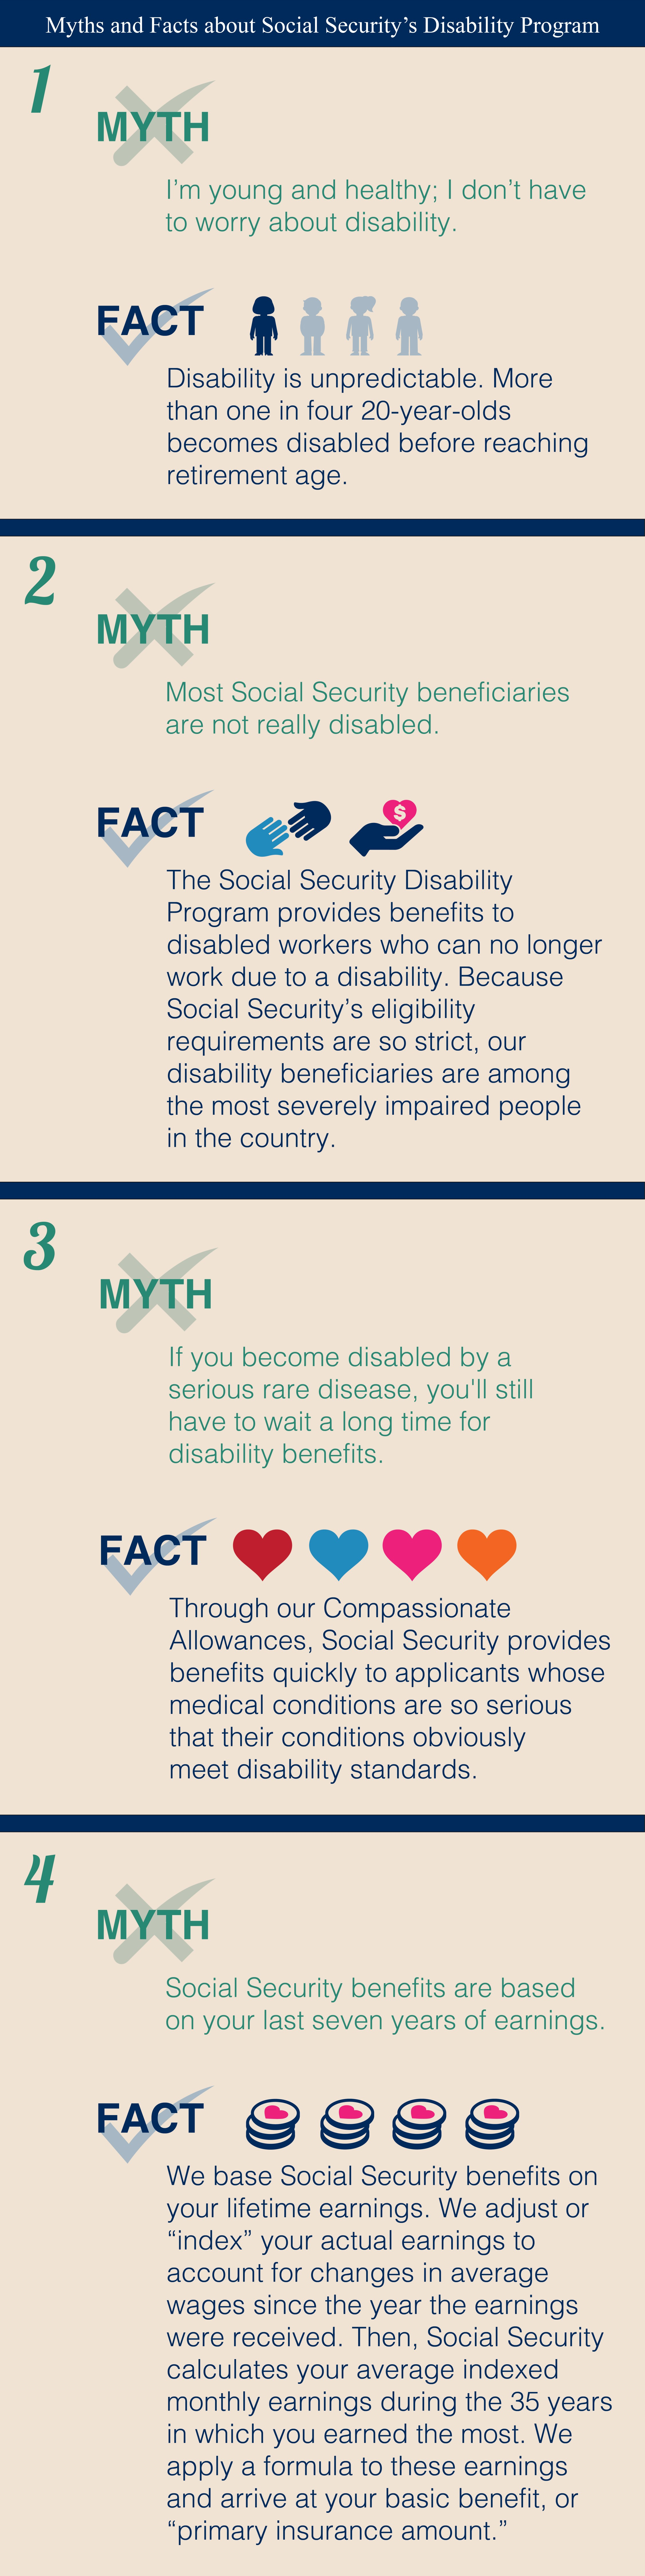 Myths and facts about social securitys disability program social myths and facts about social securitys disability program falaconquin